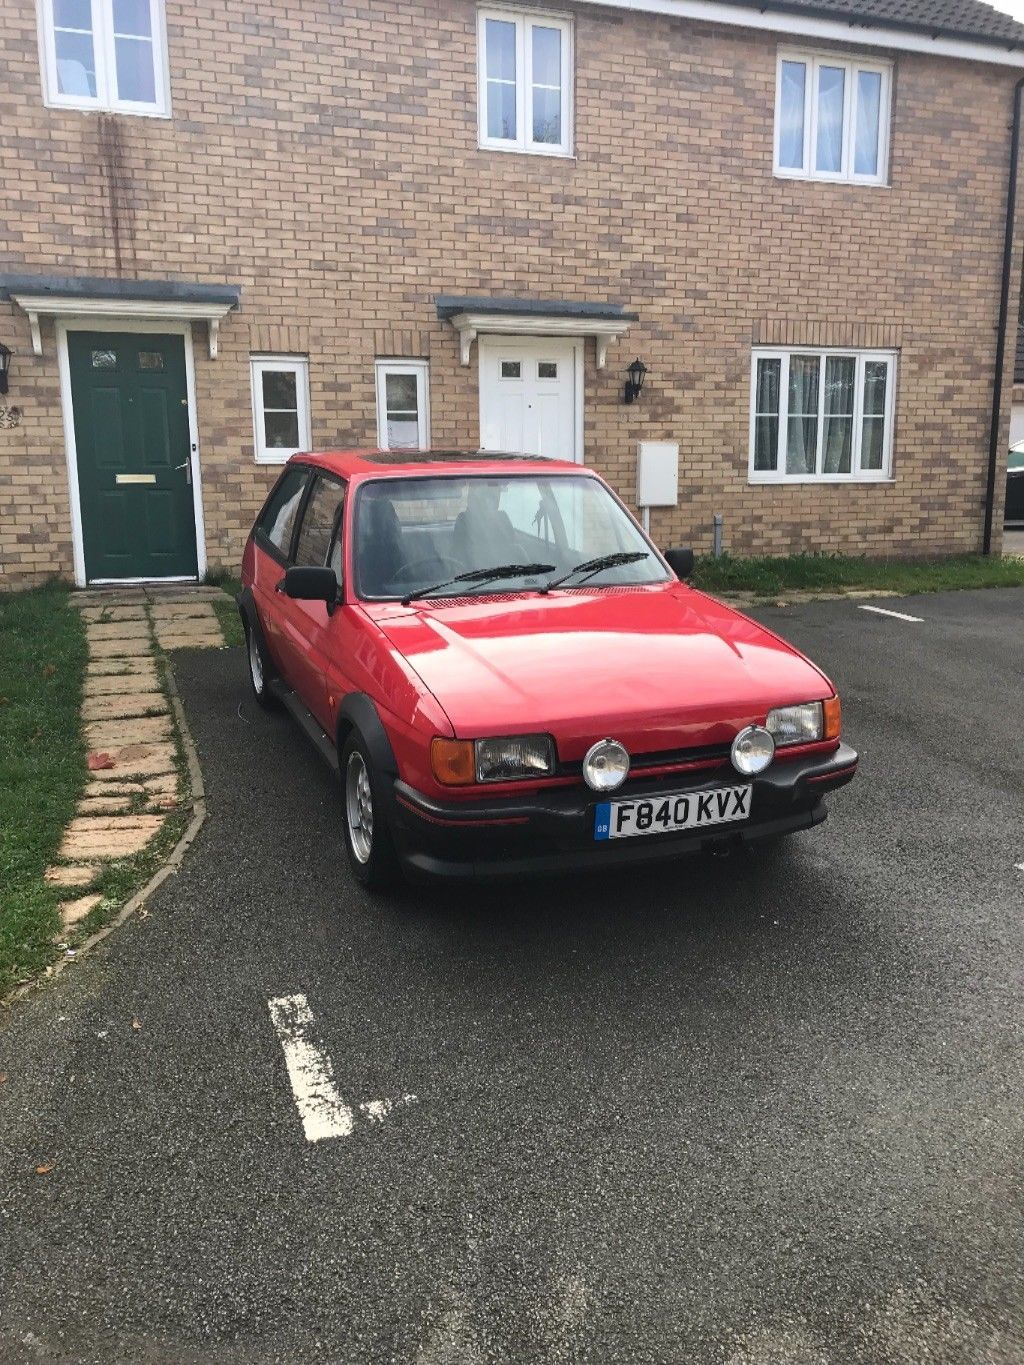 Check Out This Fast Ford Ford Fiesta Xr2 Mk2 2 0 Zetec Ford Fiesta Ford Fiesta